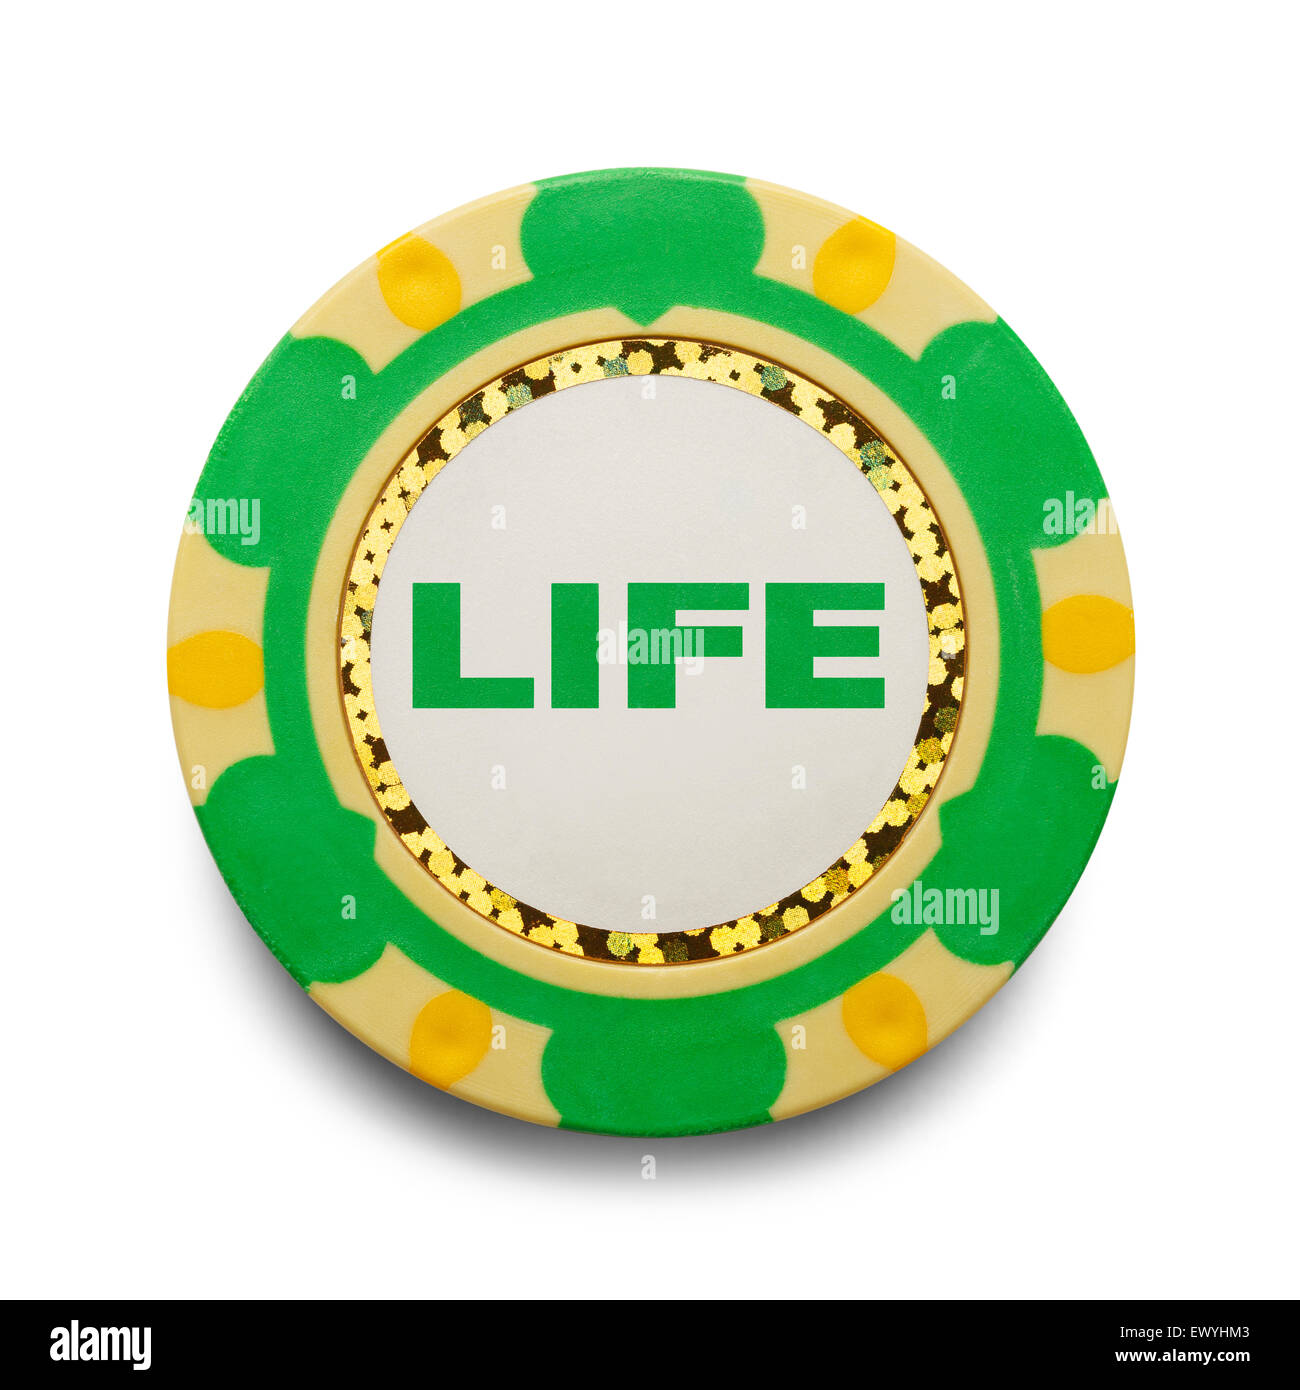 Risking Life Gambling Poker Chip Isolated on White Background. - Stock Image